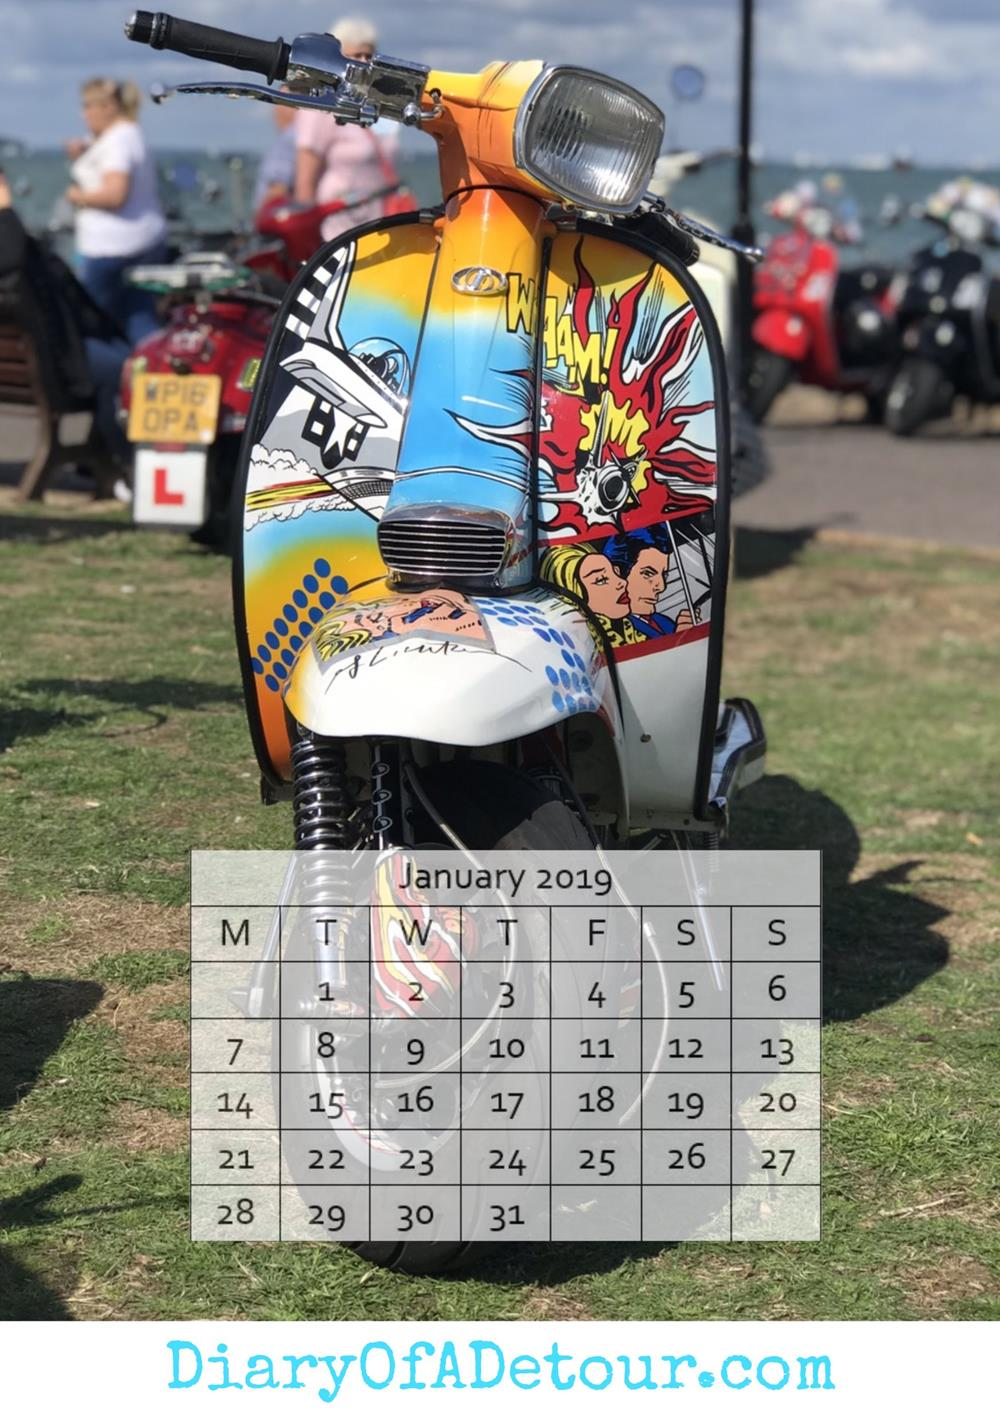 Andy Warhol custom scooter free wallpaper with January 2019 calendar